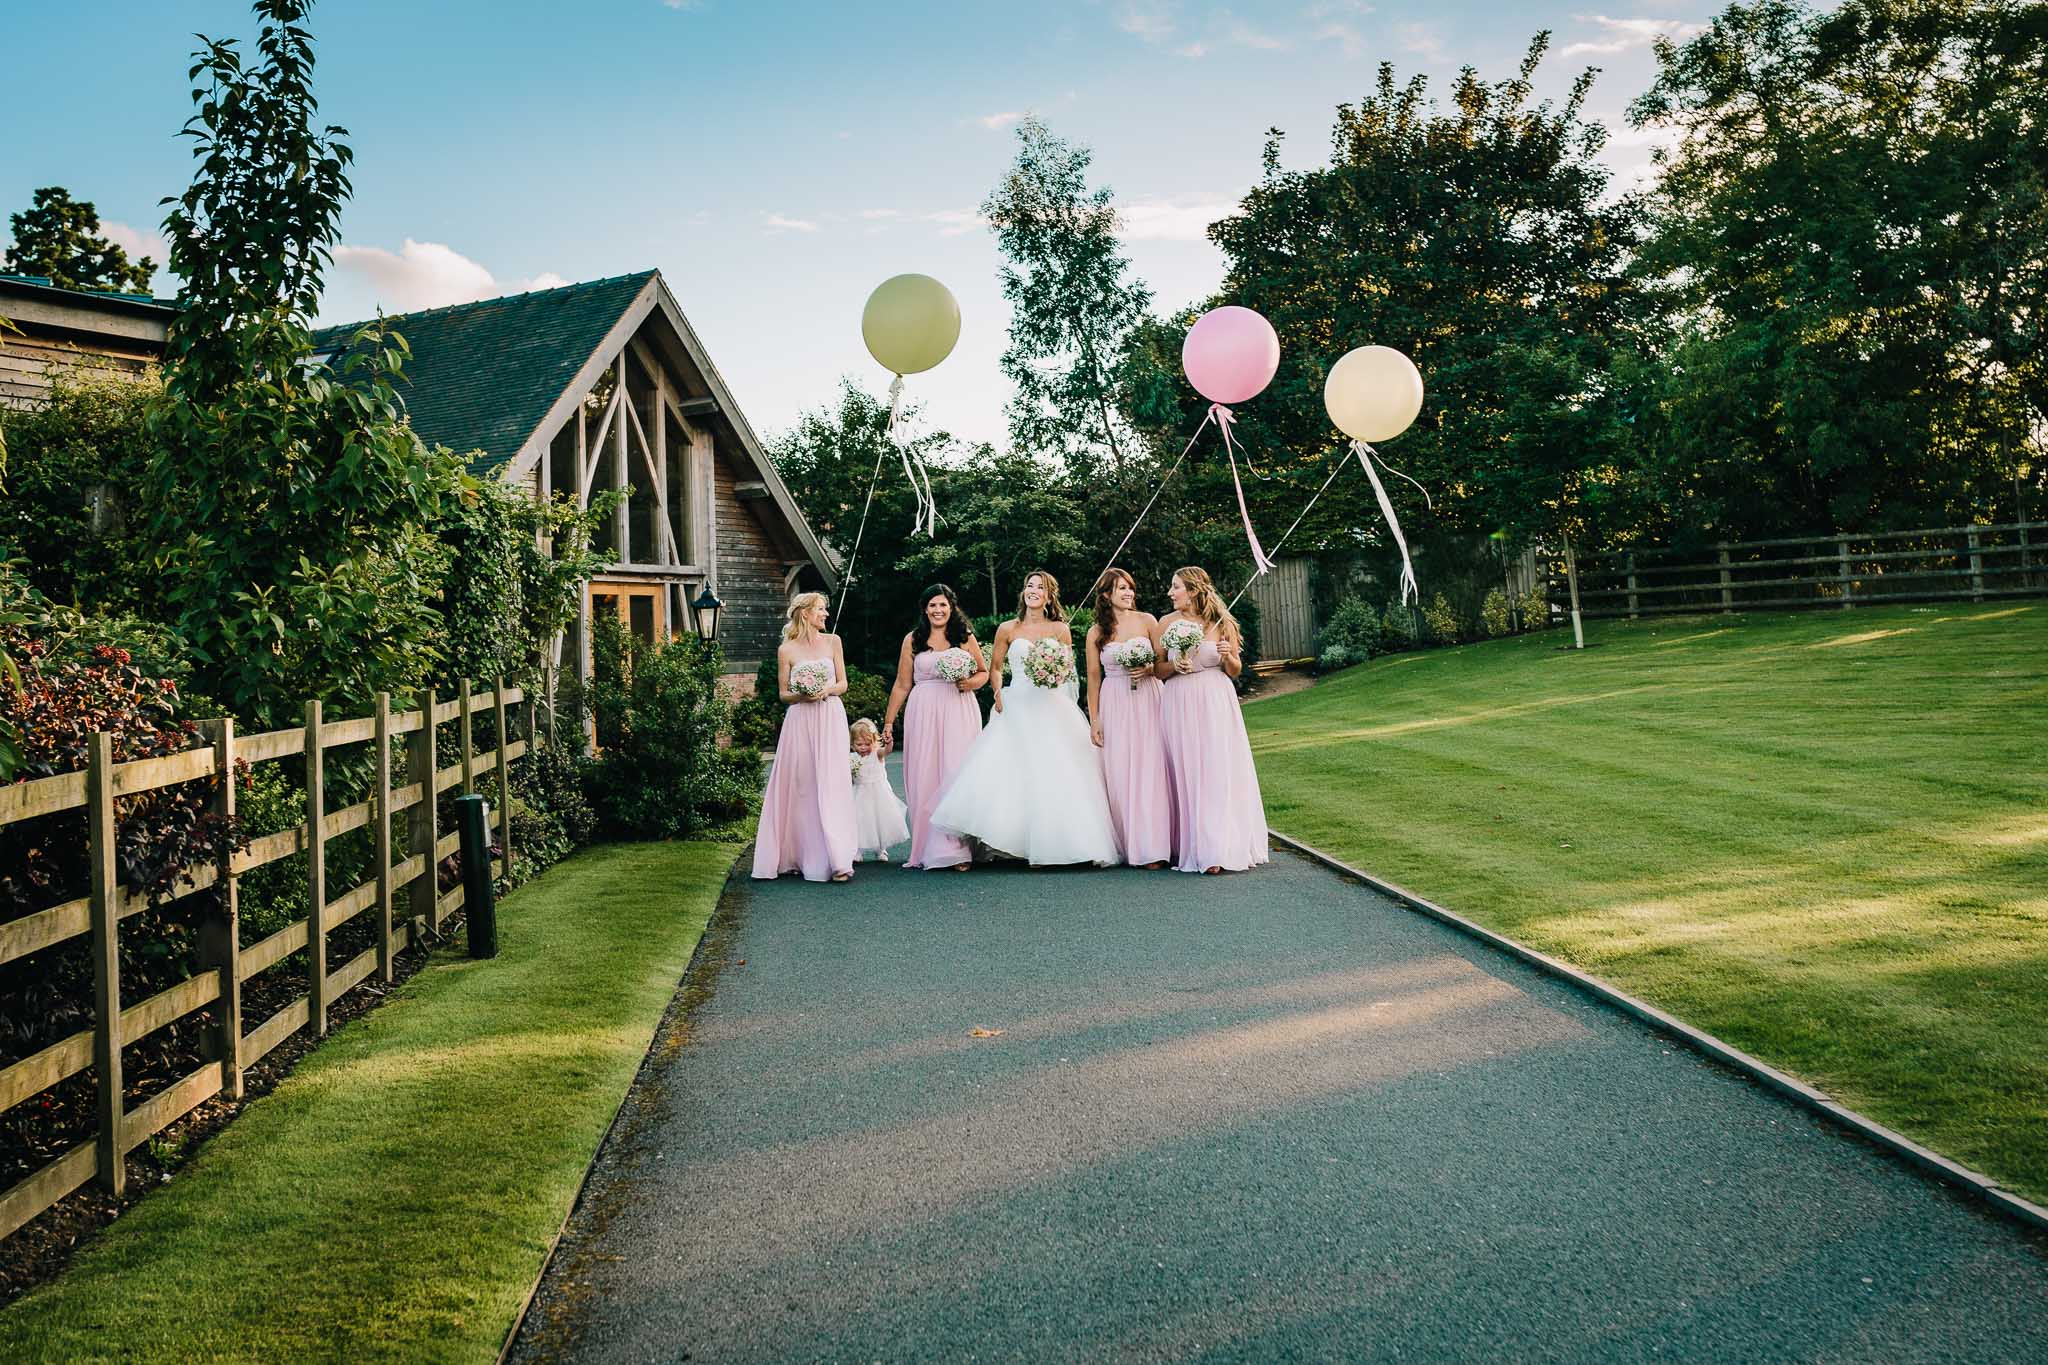 BRIDESMAIDS PORTRAITS WALKING WITH BALLOONS